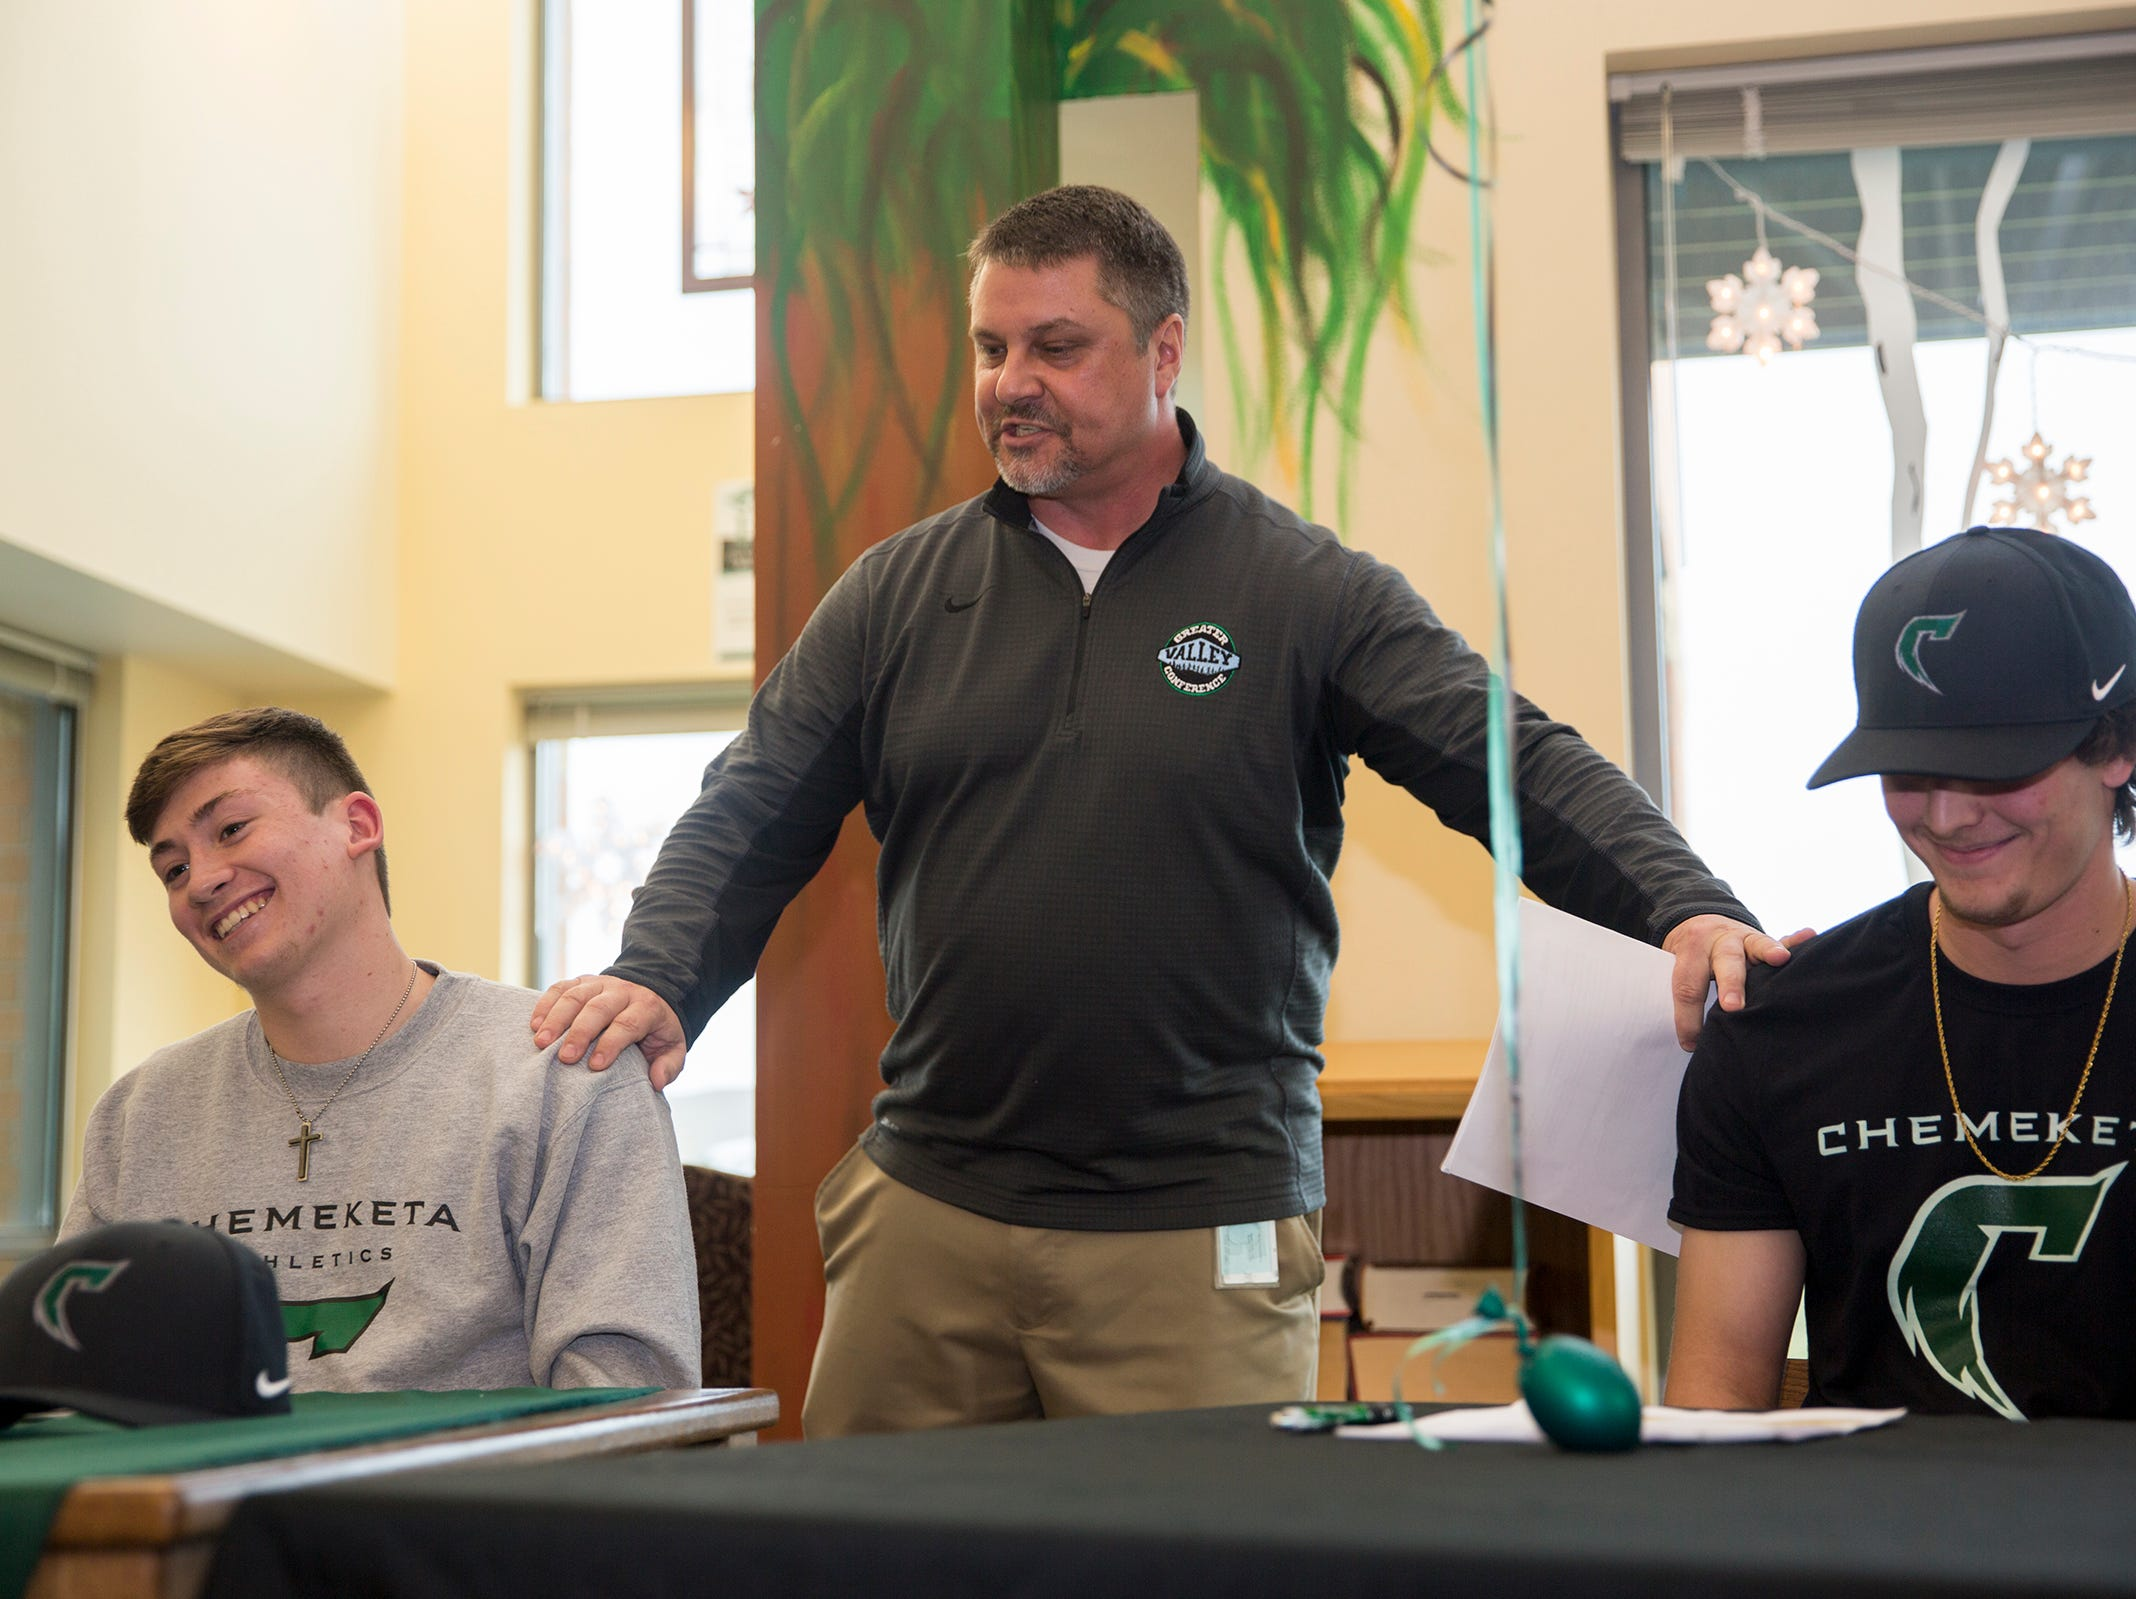 Bill Wittman, the West Salem athletic director, reaches out to seniors Noah Juarez and Branden Allison on Wednesday, Dec. 19, 2018. The two athletes will play baseball together at Chemeketa.